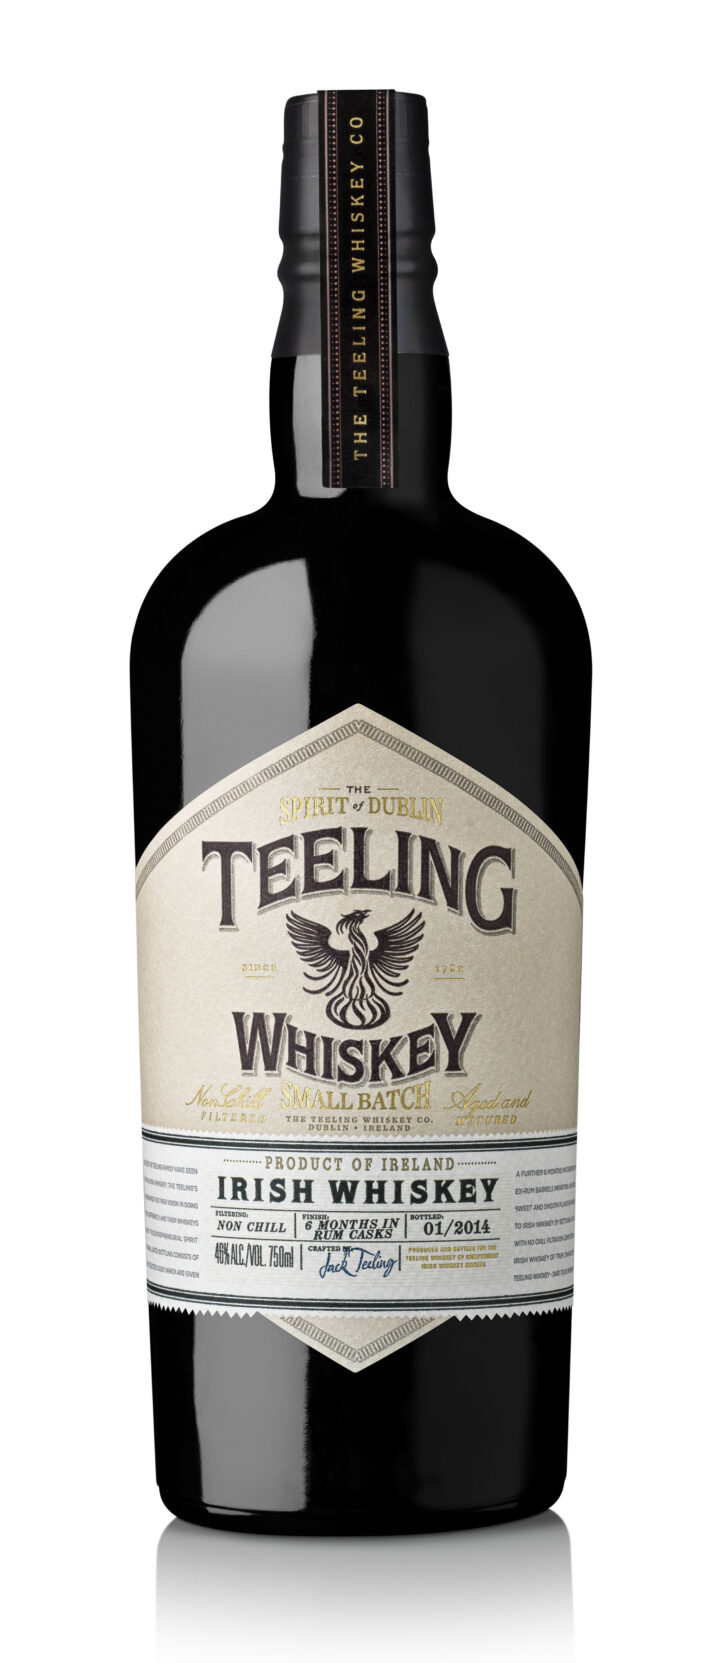 Irish whiskey growth is being driven by higher-end, unique brands such as Teeling, which specializes in single pot still whiskey.